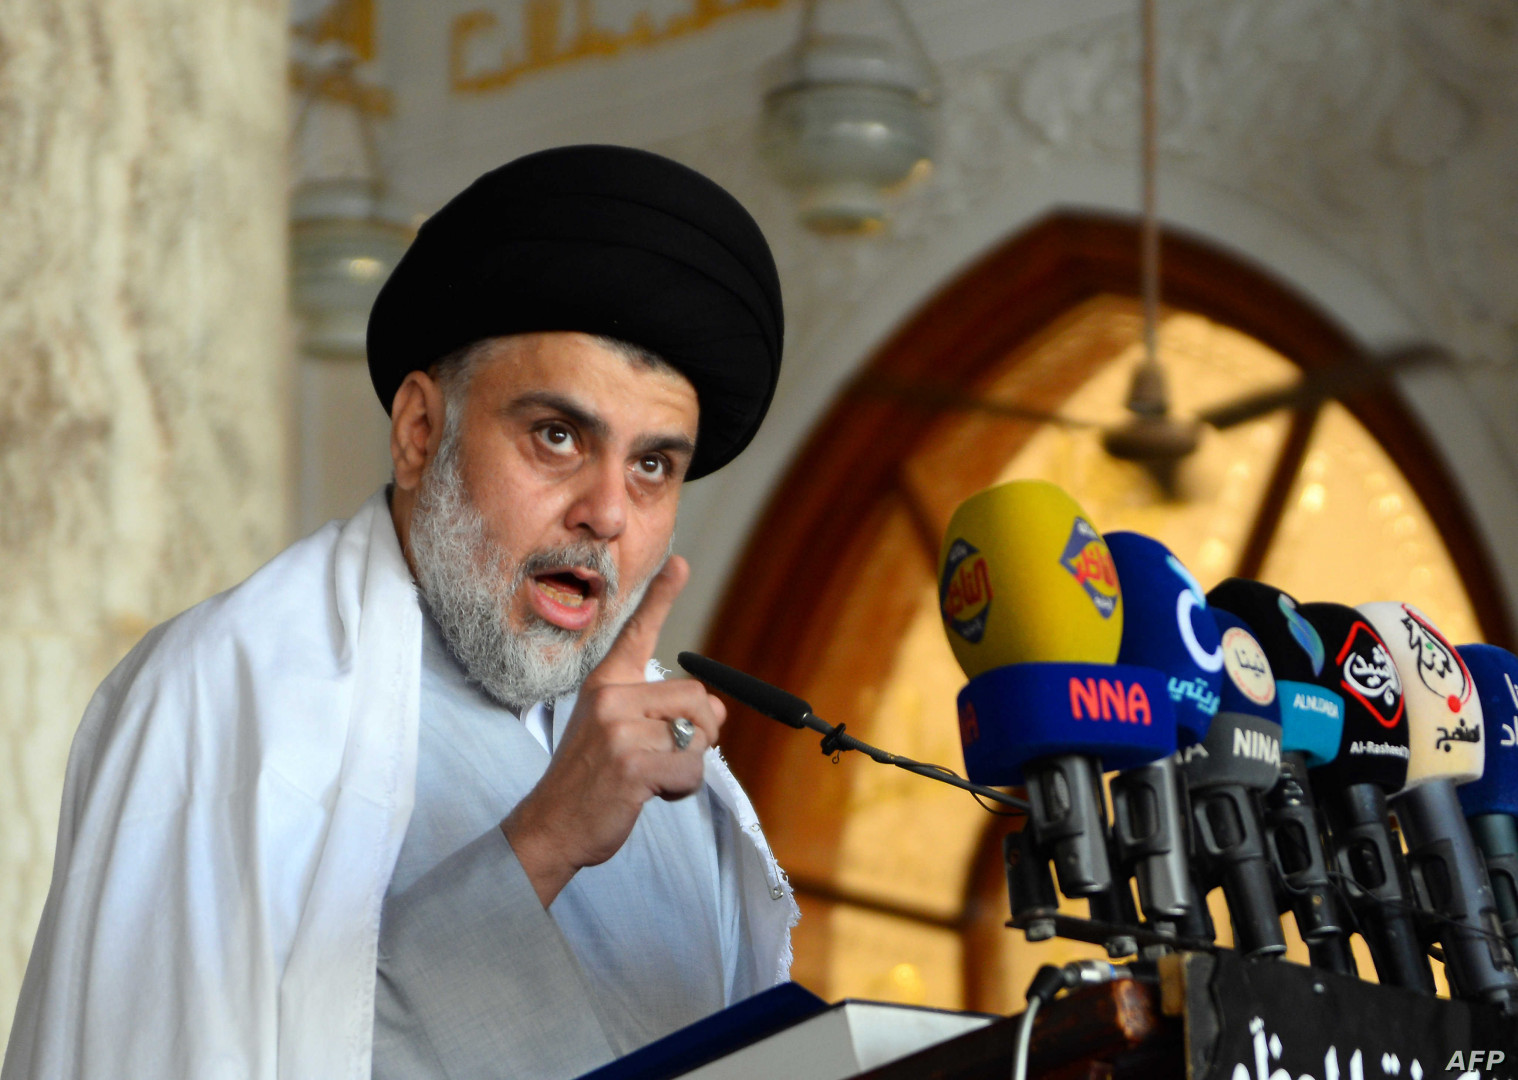 Al-Sadr condemns parties seeking to disturb security in Iraq to delay or cancel the elections